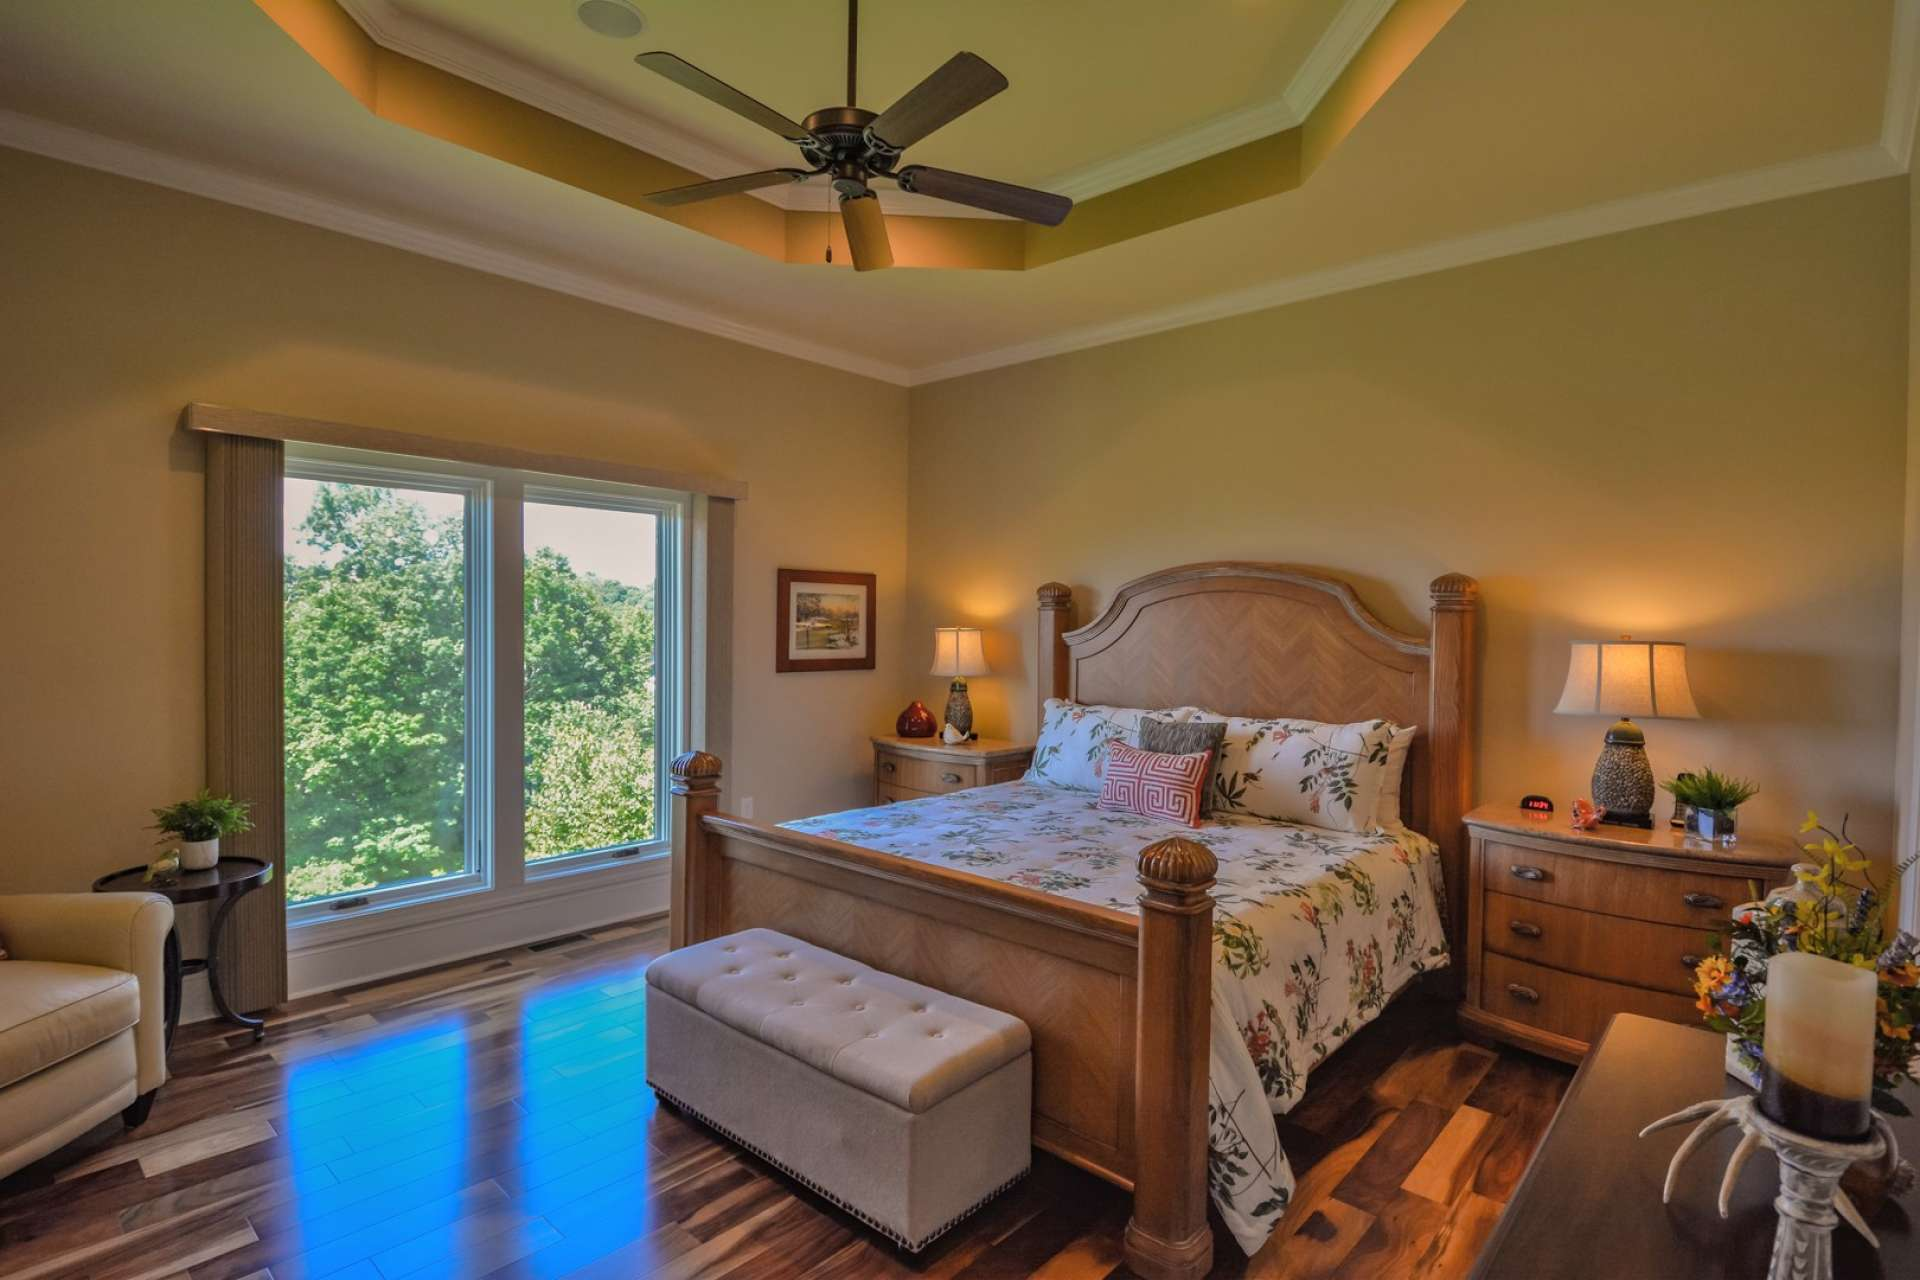 The magnificent master suite includes a trey ceiling and ceiling fan. Of course you'll find stunning views from the bedroom windows.